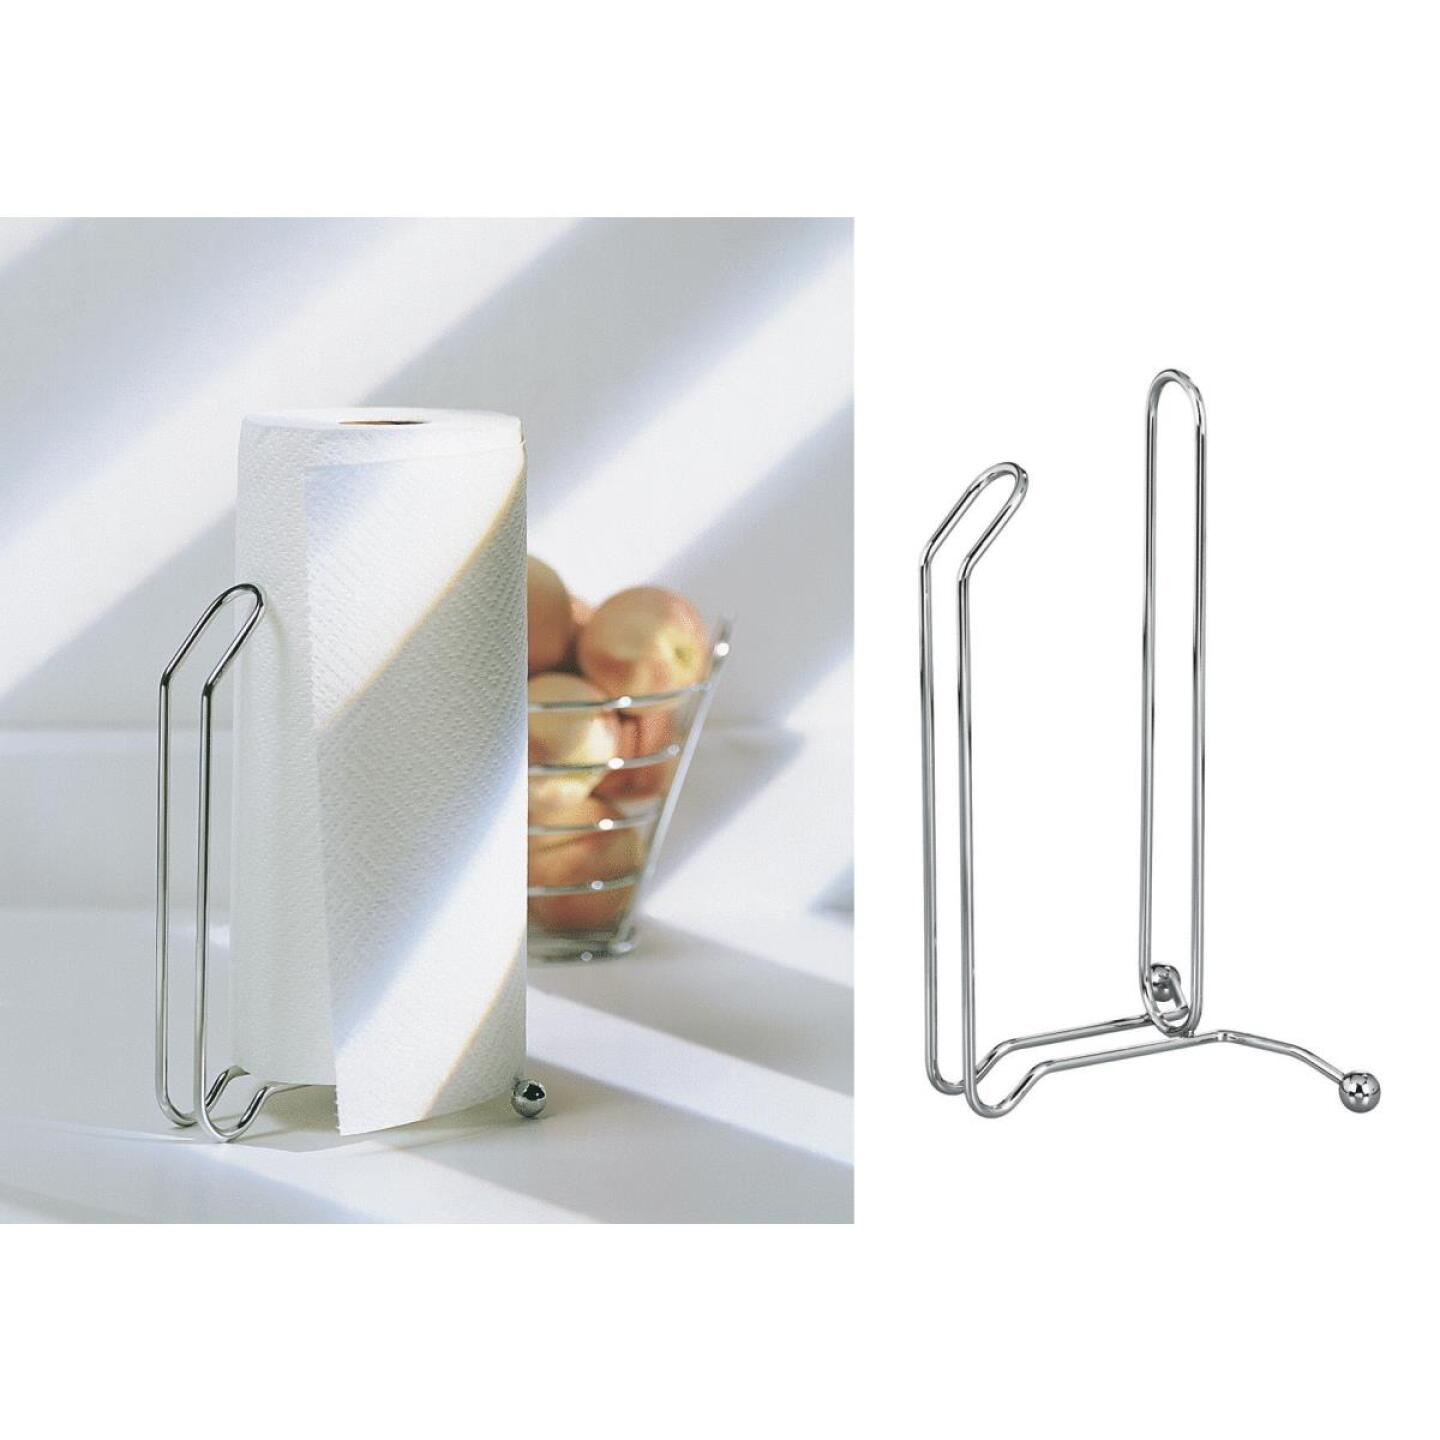 InterDesign Aria Paper Towel Holder Stand Image 1